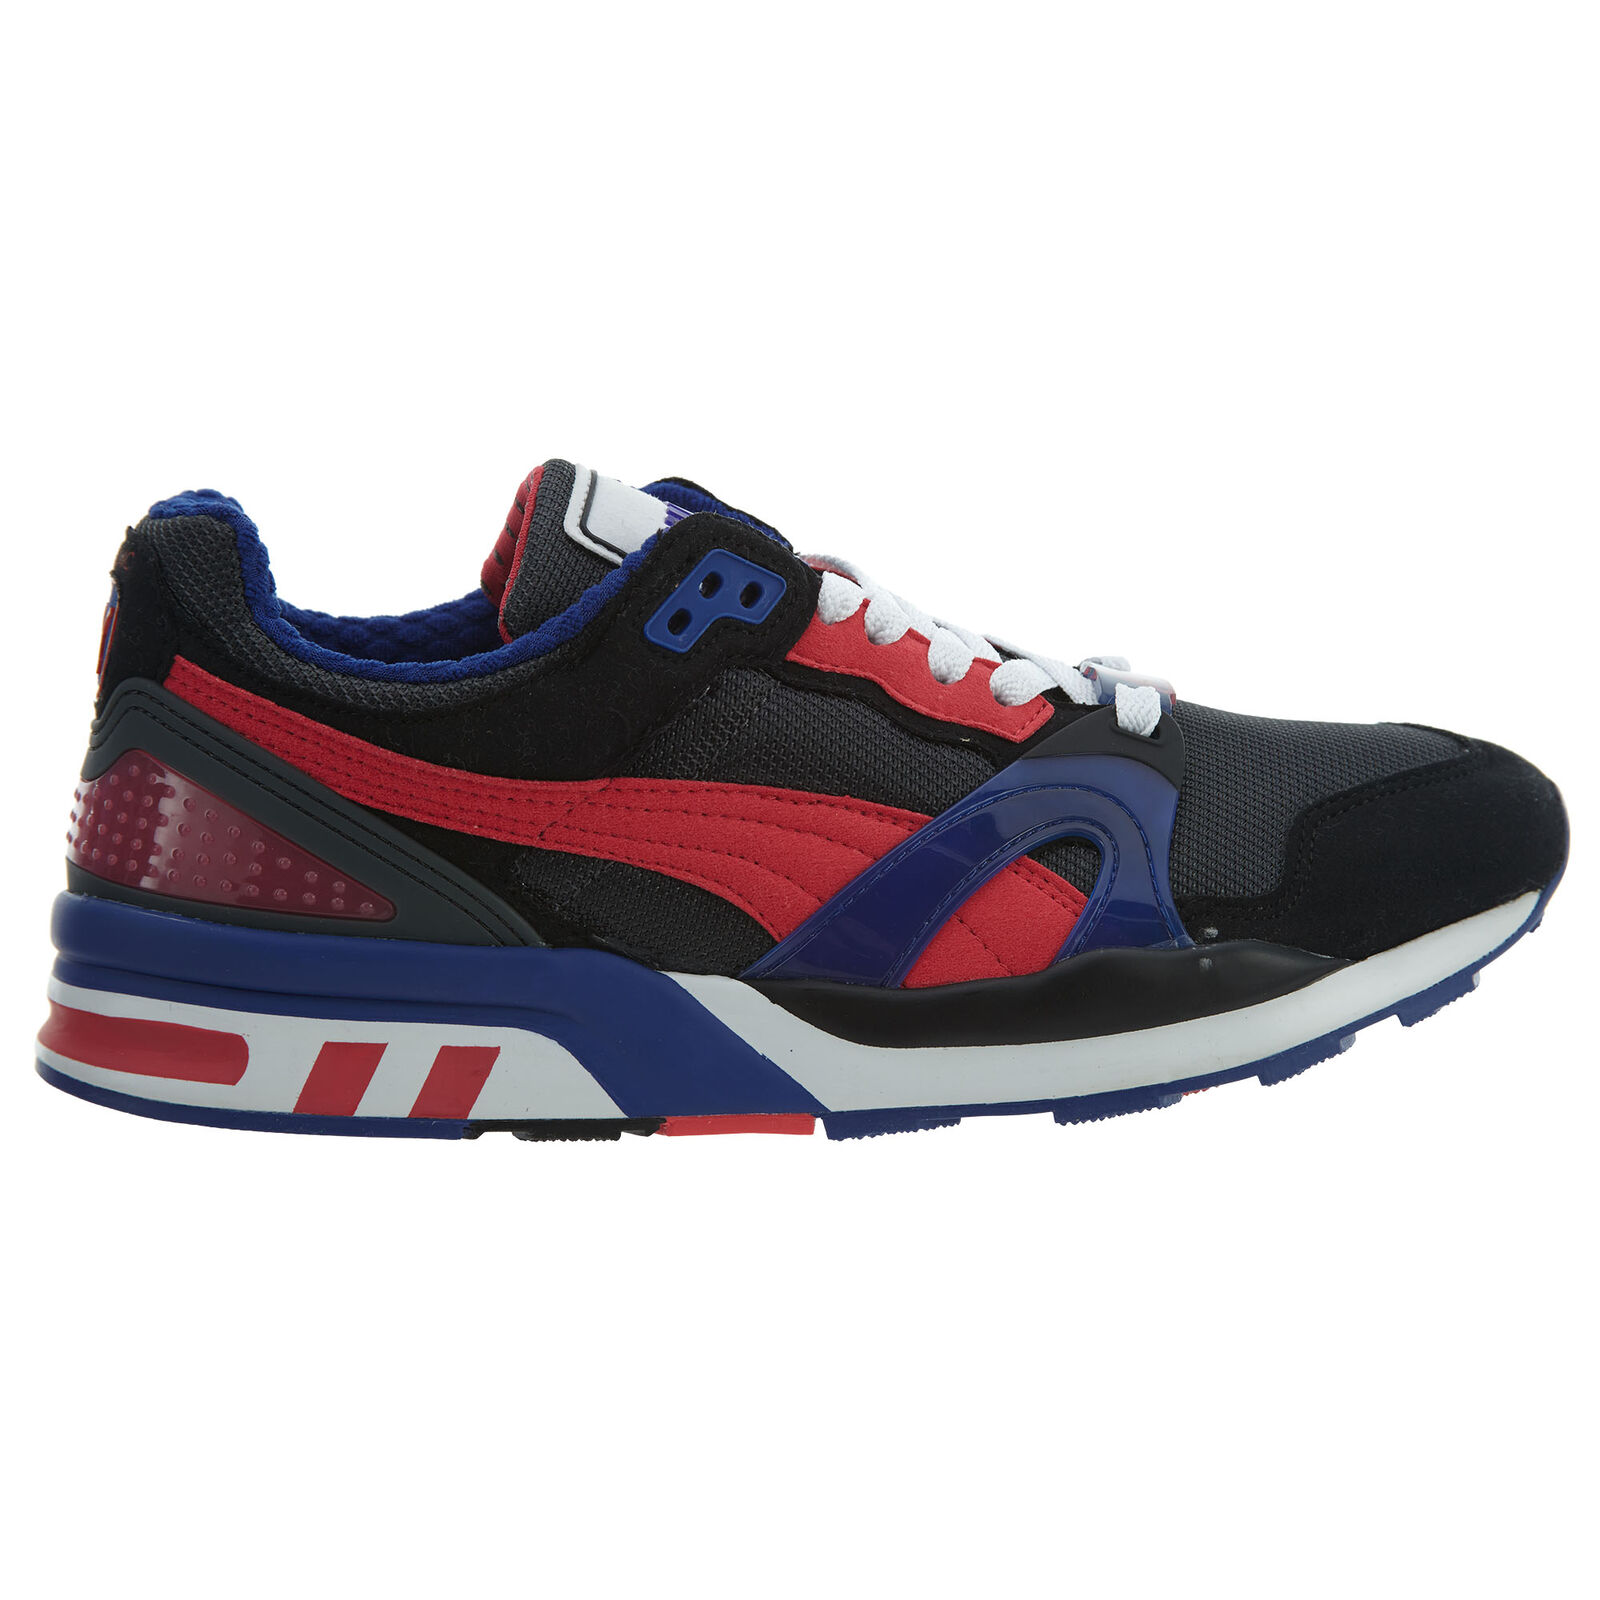 Puma Trinomic XT 2 Plus Mens 355868-15 Black Teaberry Red Running Shoes Size 11